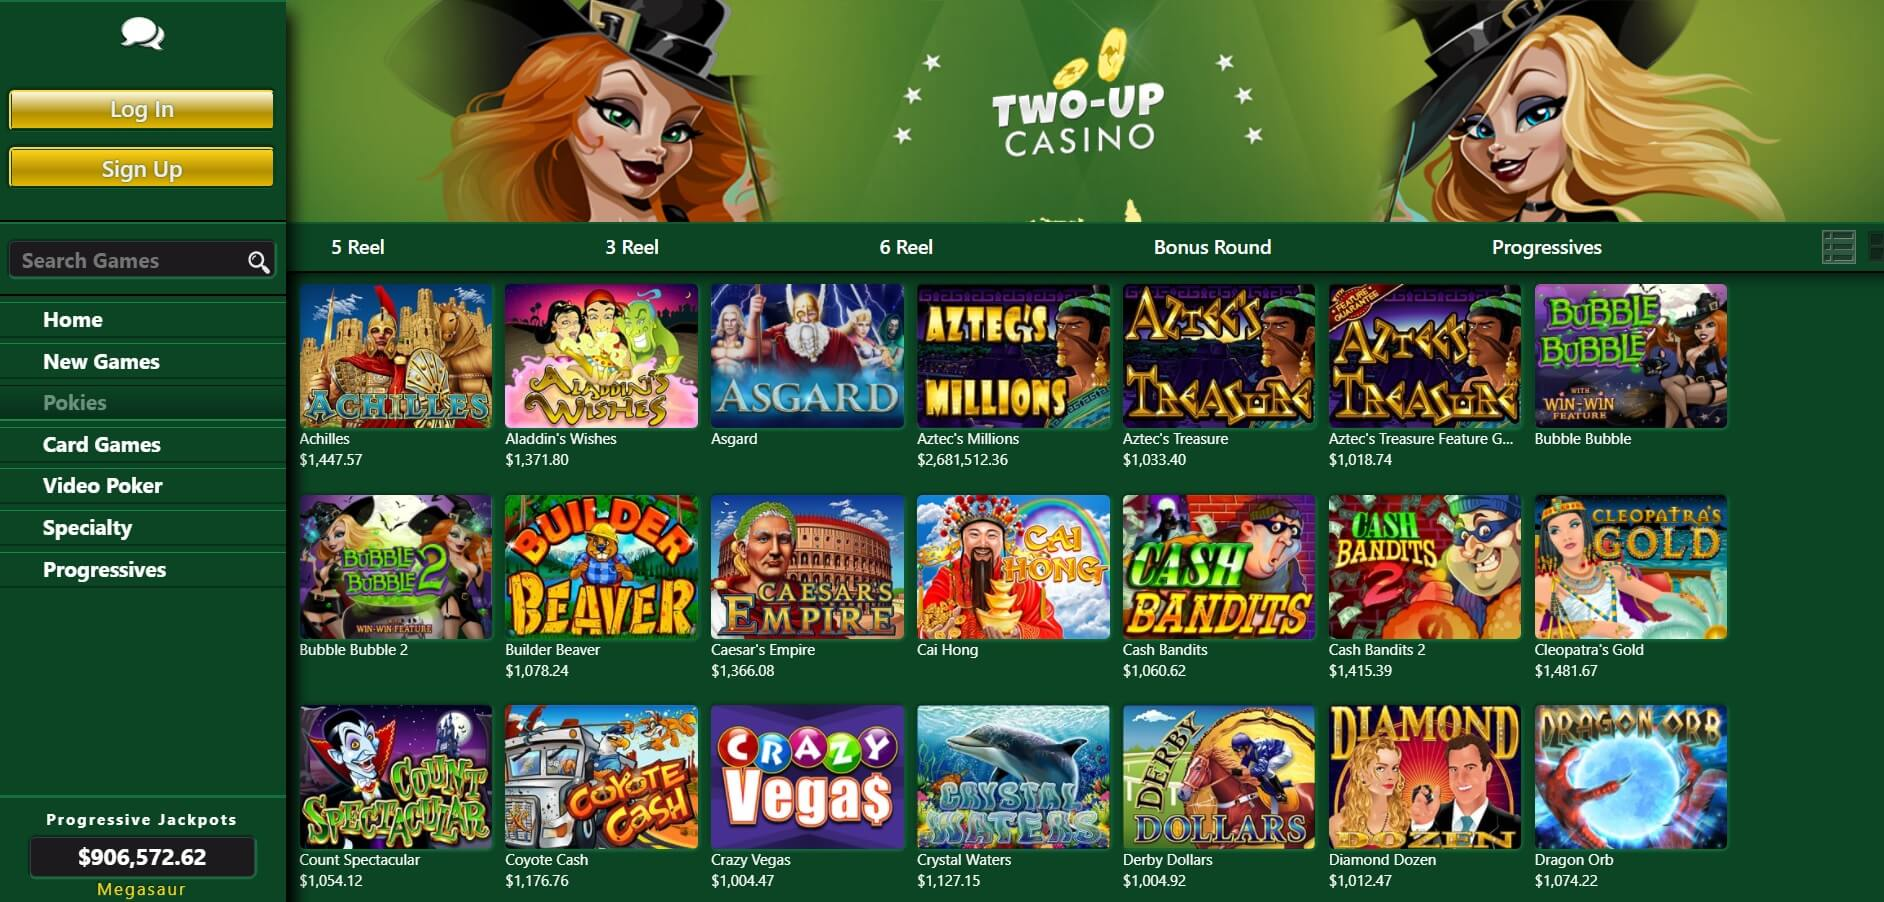 two up casino games and pokies